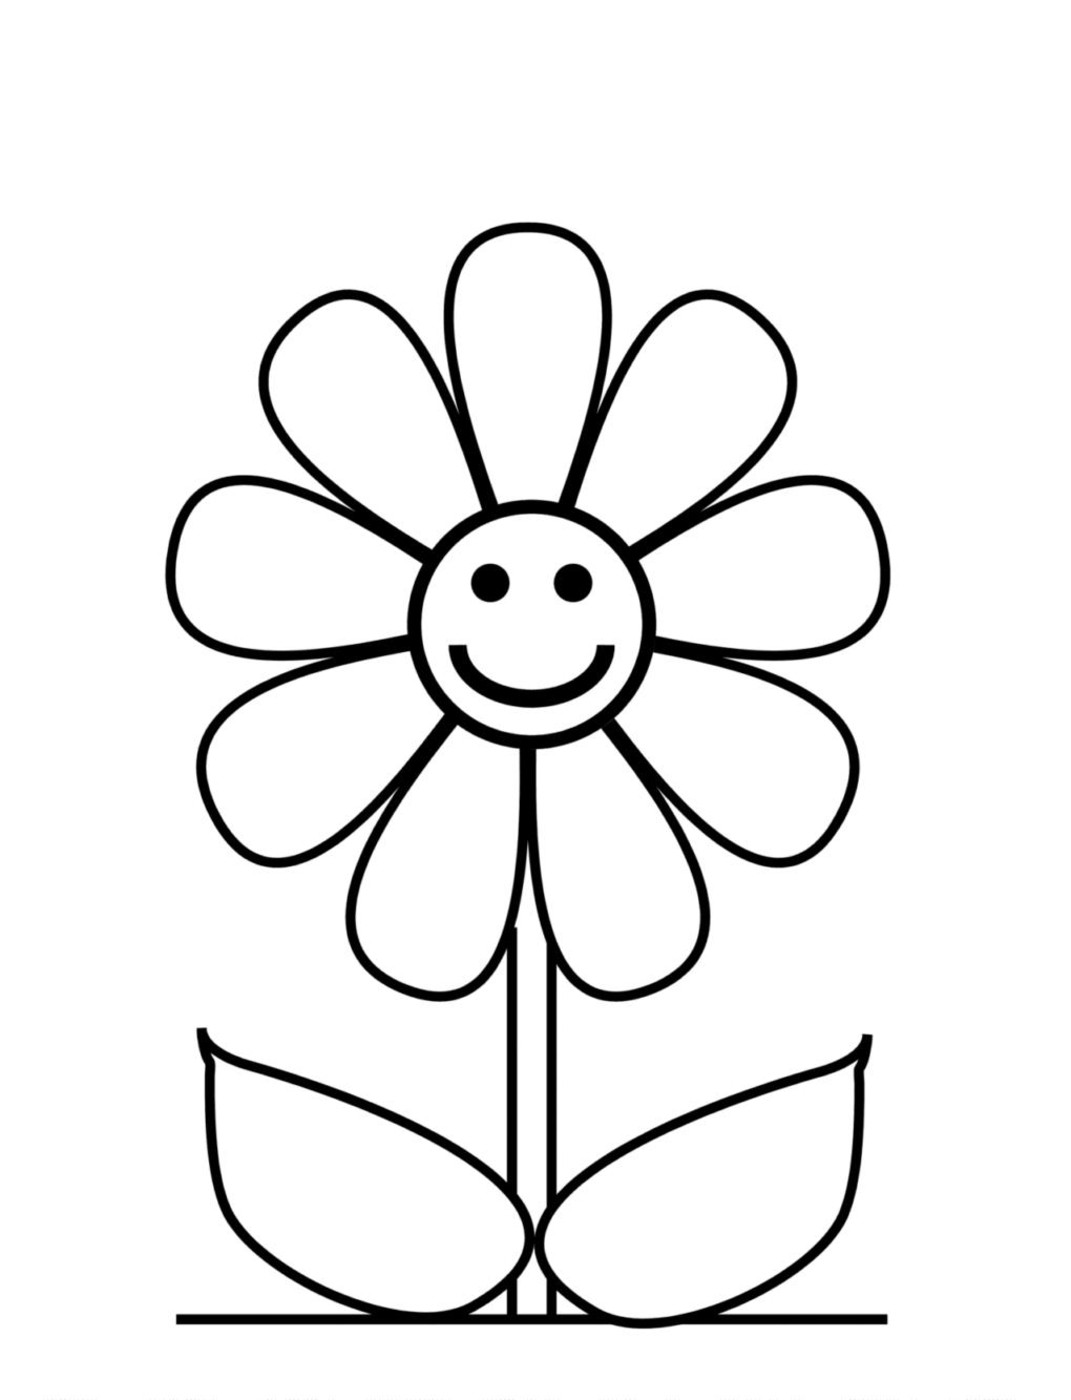 flower printable coloring sheets free printable flower coloring pages for kids cool2bkids coloring sheets flower printable